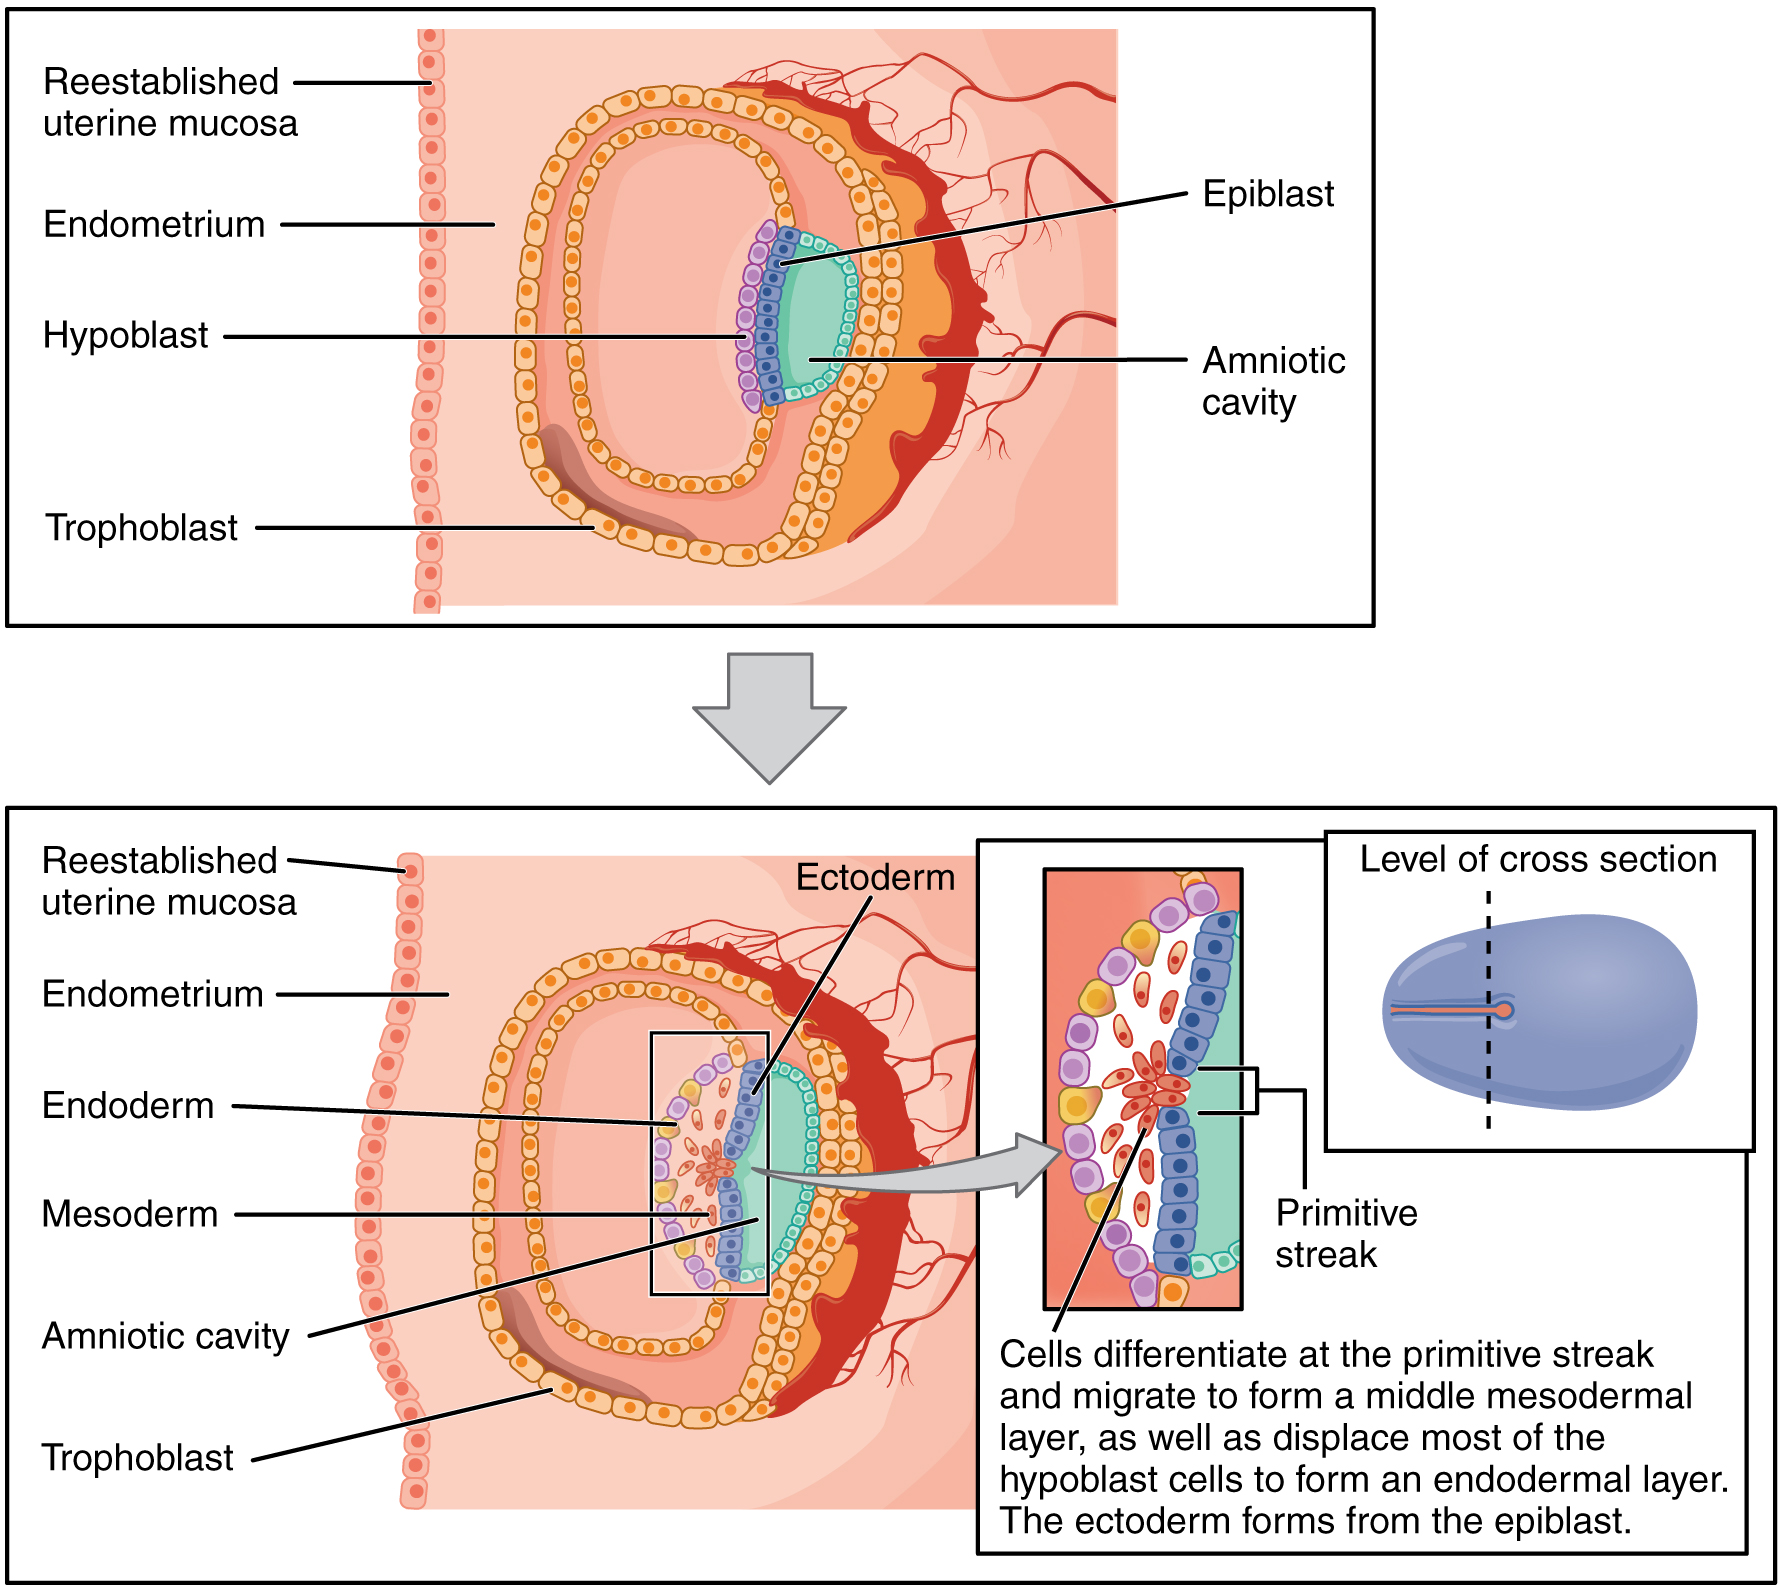 This image shows the different germ layers. The top panel shows the epiblast and trophoblast cells in the early stages of development. The bottom panel shows the three germ layers: the endoderm, ectoderm, and mesoderm. All the other major parts are also labeled.